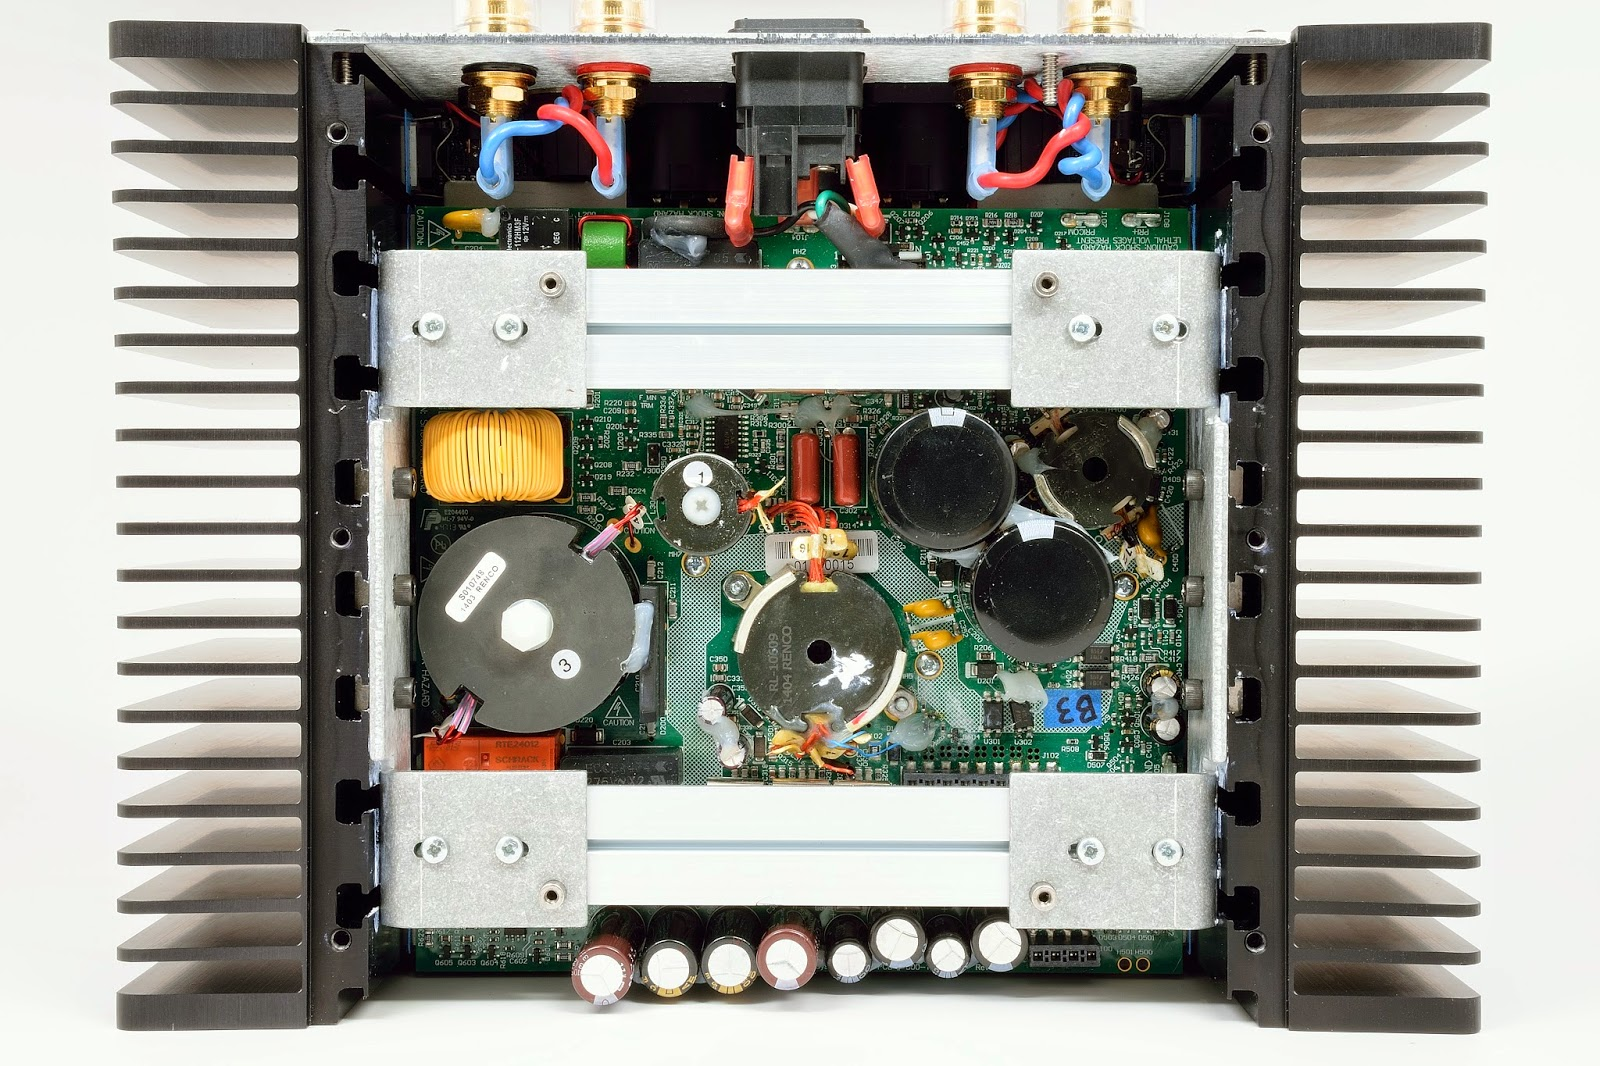 1028rear together with Detail2 cat est gaming puis rubrique est wg accone puis ref est jx10015889 in addition Can I Use Regular Headphones On Transatlantic British Airways 747 Flights likewise Dell XPS 12 83614 0 as well Cabos. on audio jack adapter